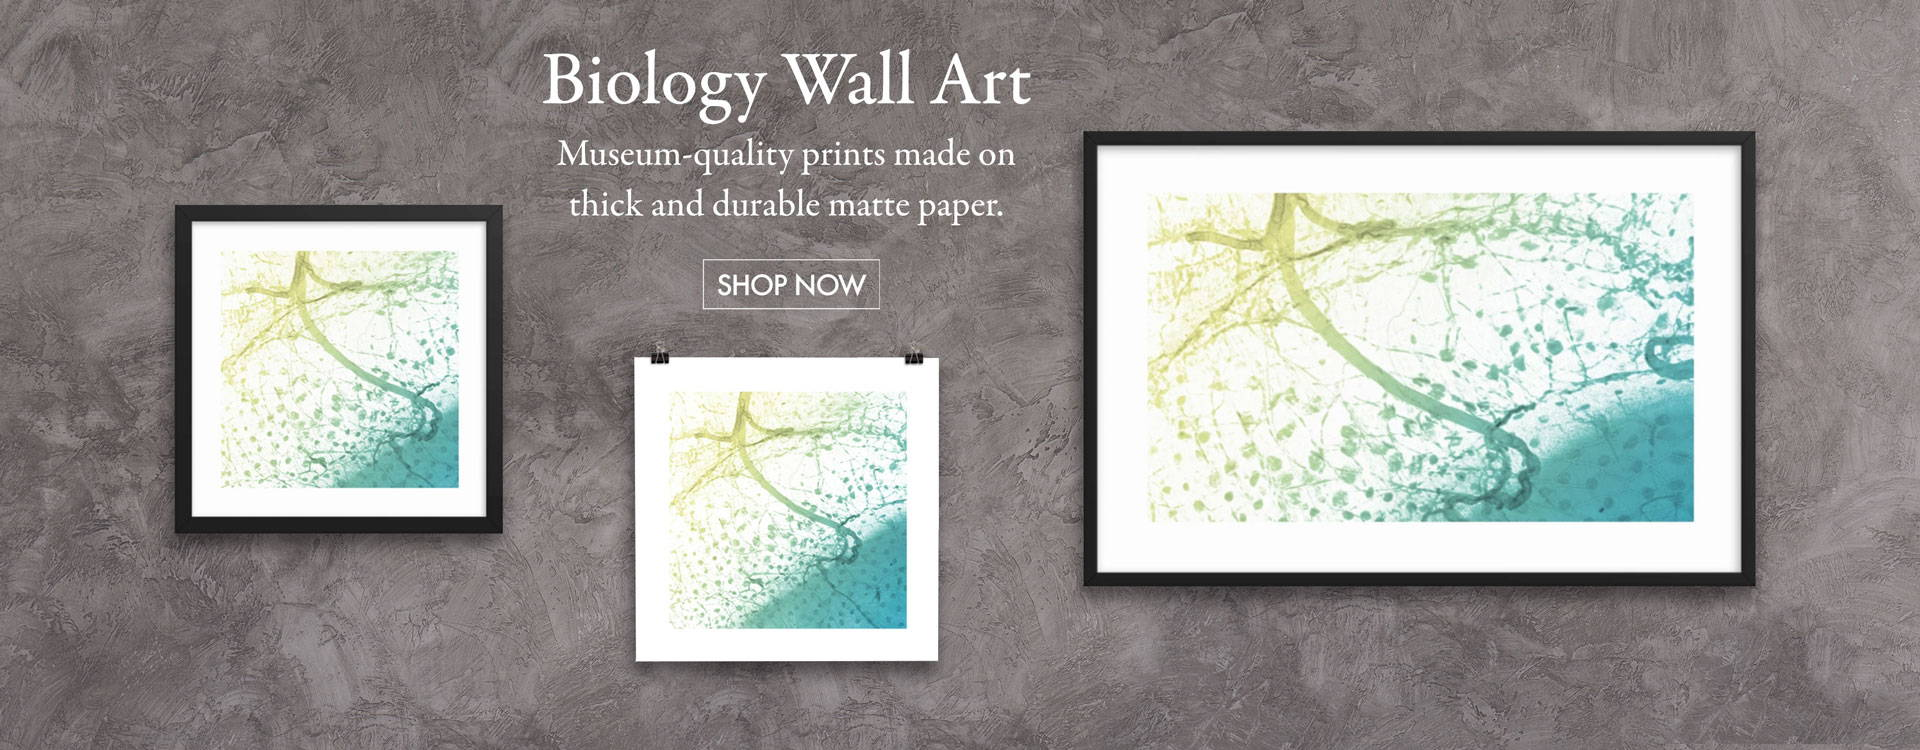 Biology Wall Art - Museum-quality prints made on thick and durable matte paper.